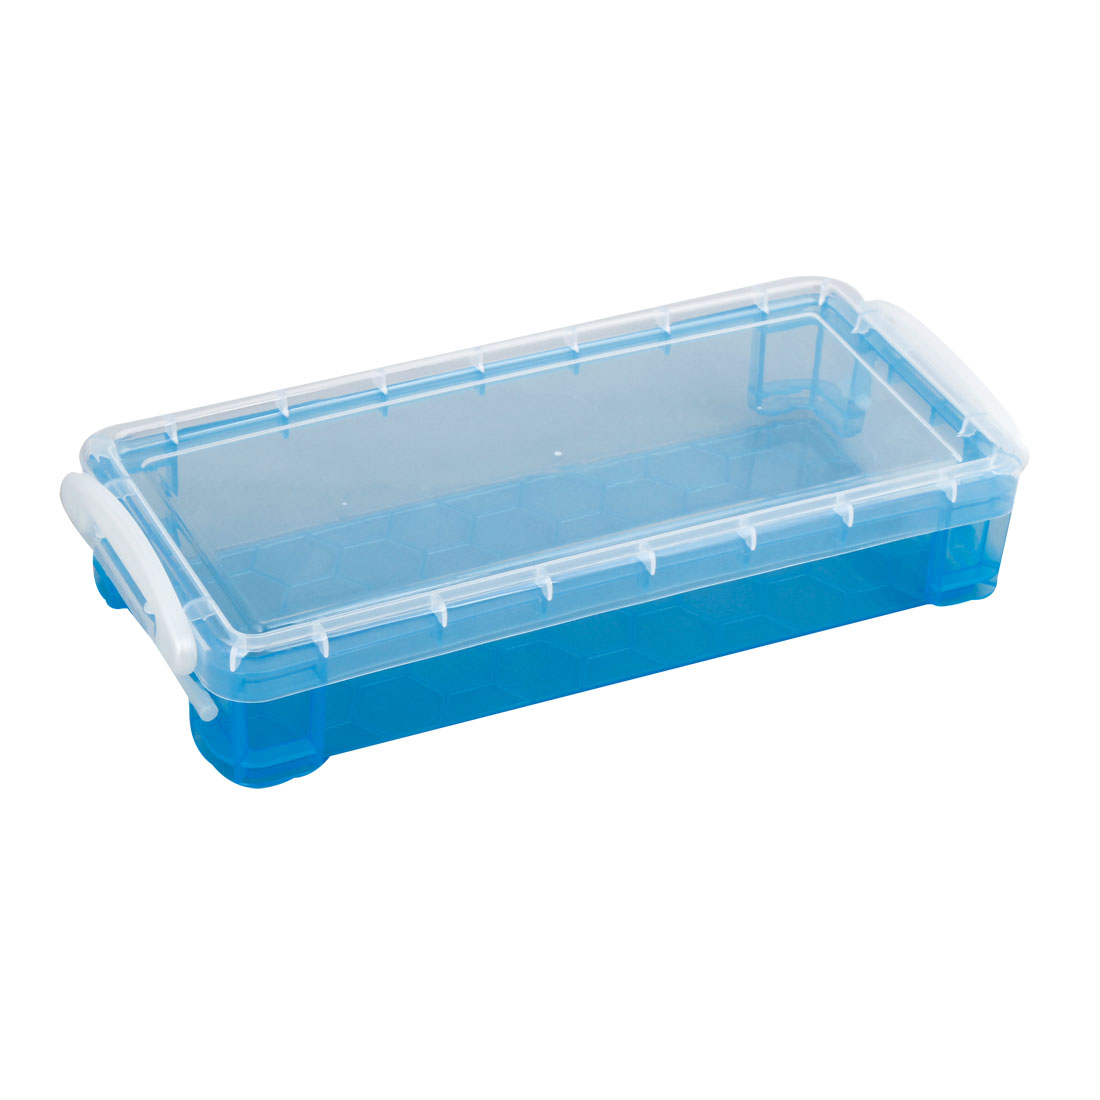 Household Clear Blue Rectangle Plastic Clip On Lid Storage Box Holder